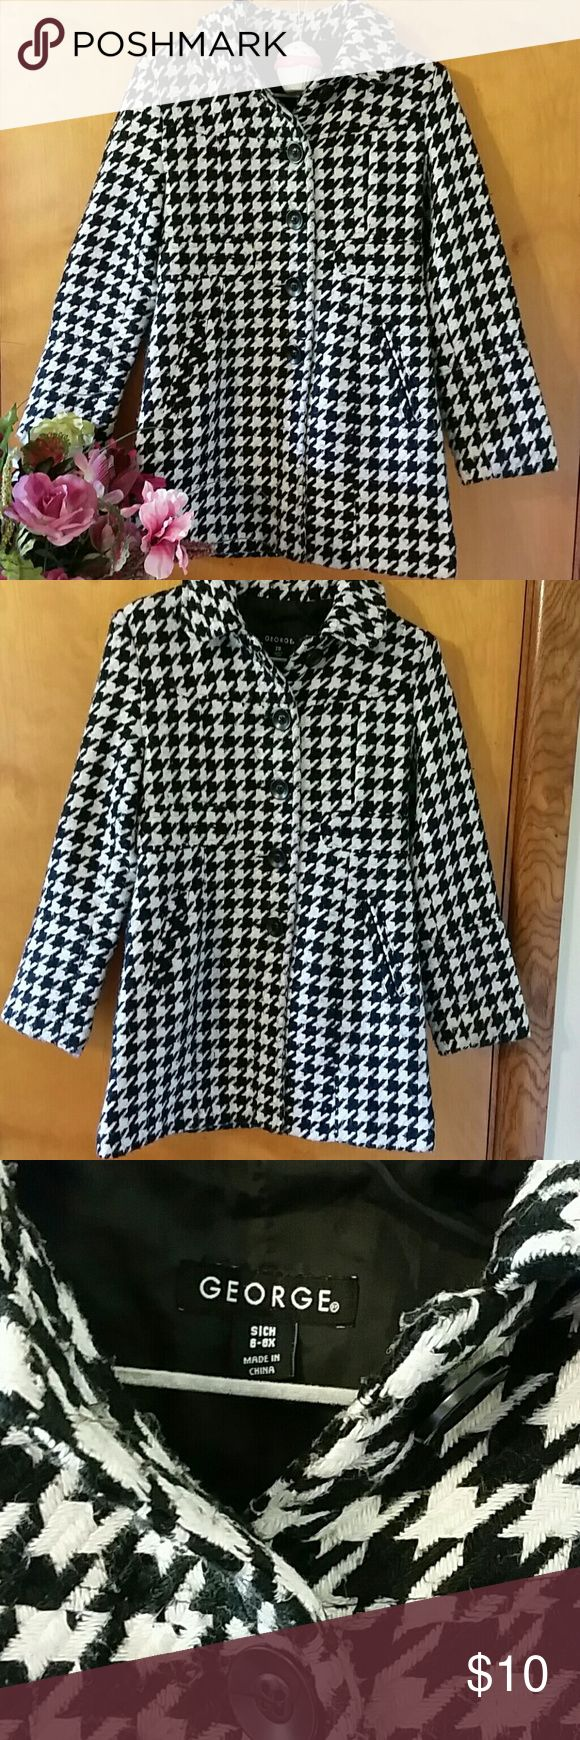 Girls Houndstooth Peacoat Houndstooth peacoat. George size 6-6X. Black buttons, side pockets, split in the back, fully lined.  Shows signs of wear, has a few loose threads on the back and some piling. 2 of my daughters used this as a dress coat over church dresses. Pre-loved but still in good condition. George Jackets & Coats Pea Coats